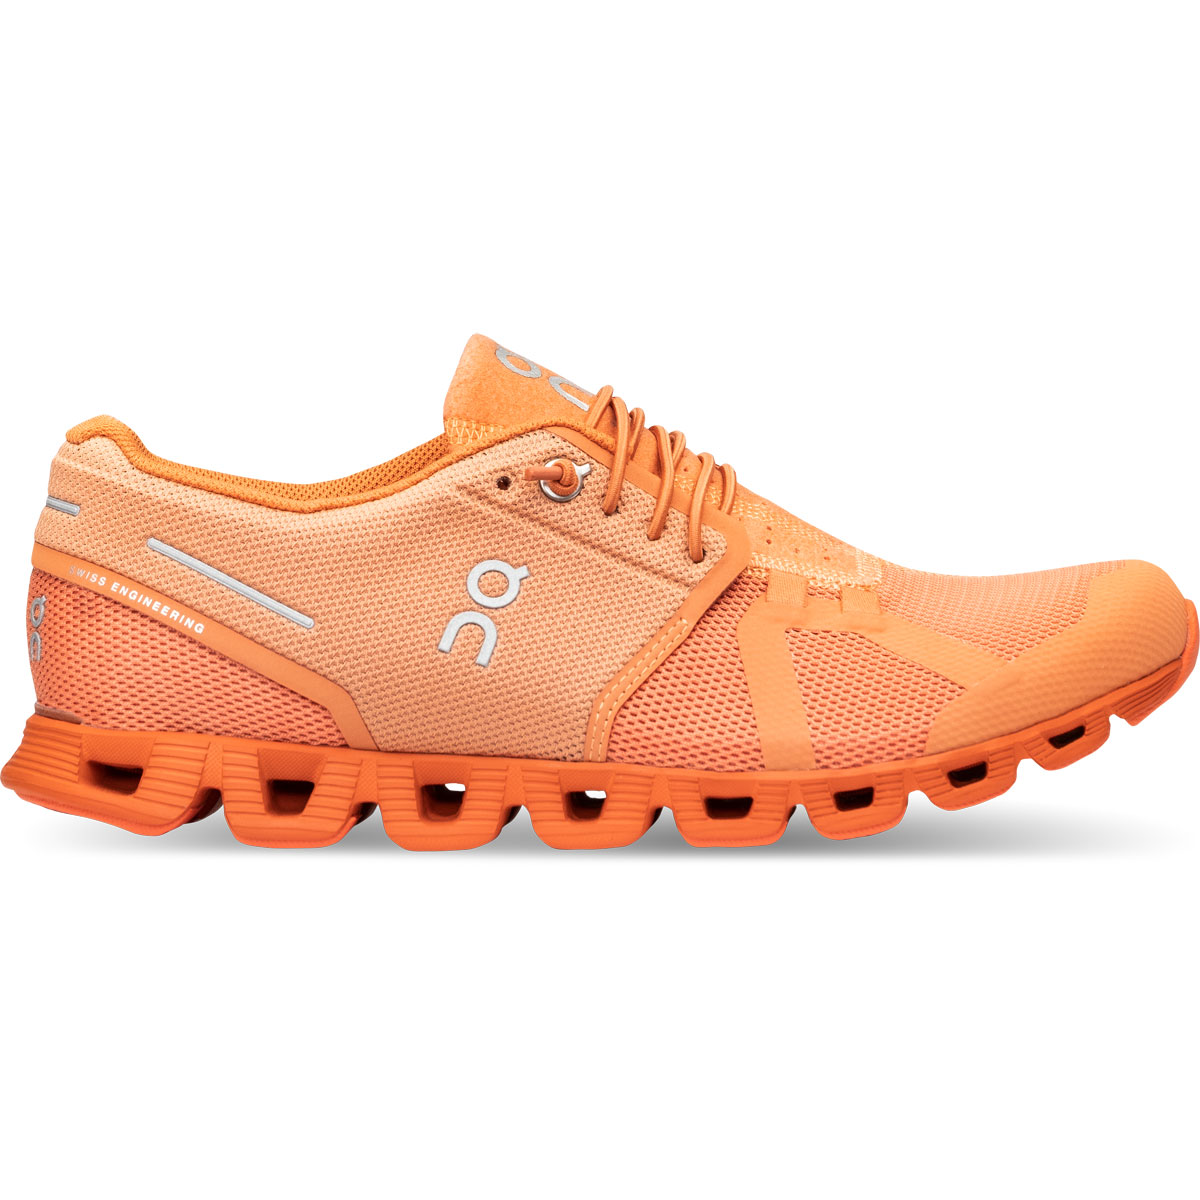 Women's On Cloud Monochrome Running Shoe - Color: Flare - Size: 5 - Width: Regular, Flare, large, image 1